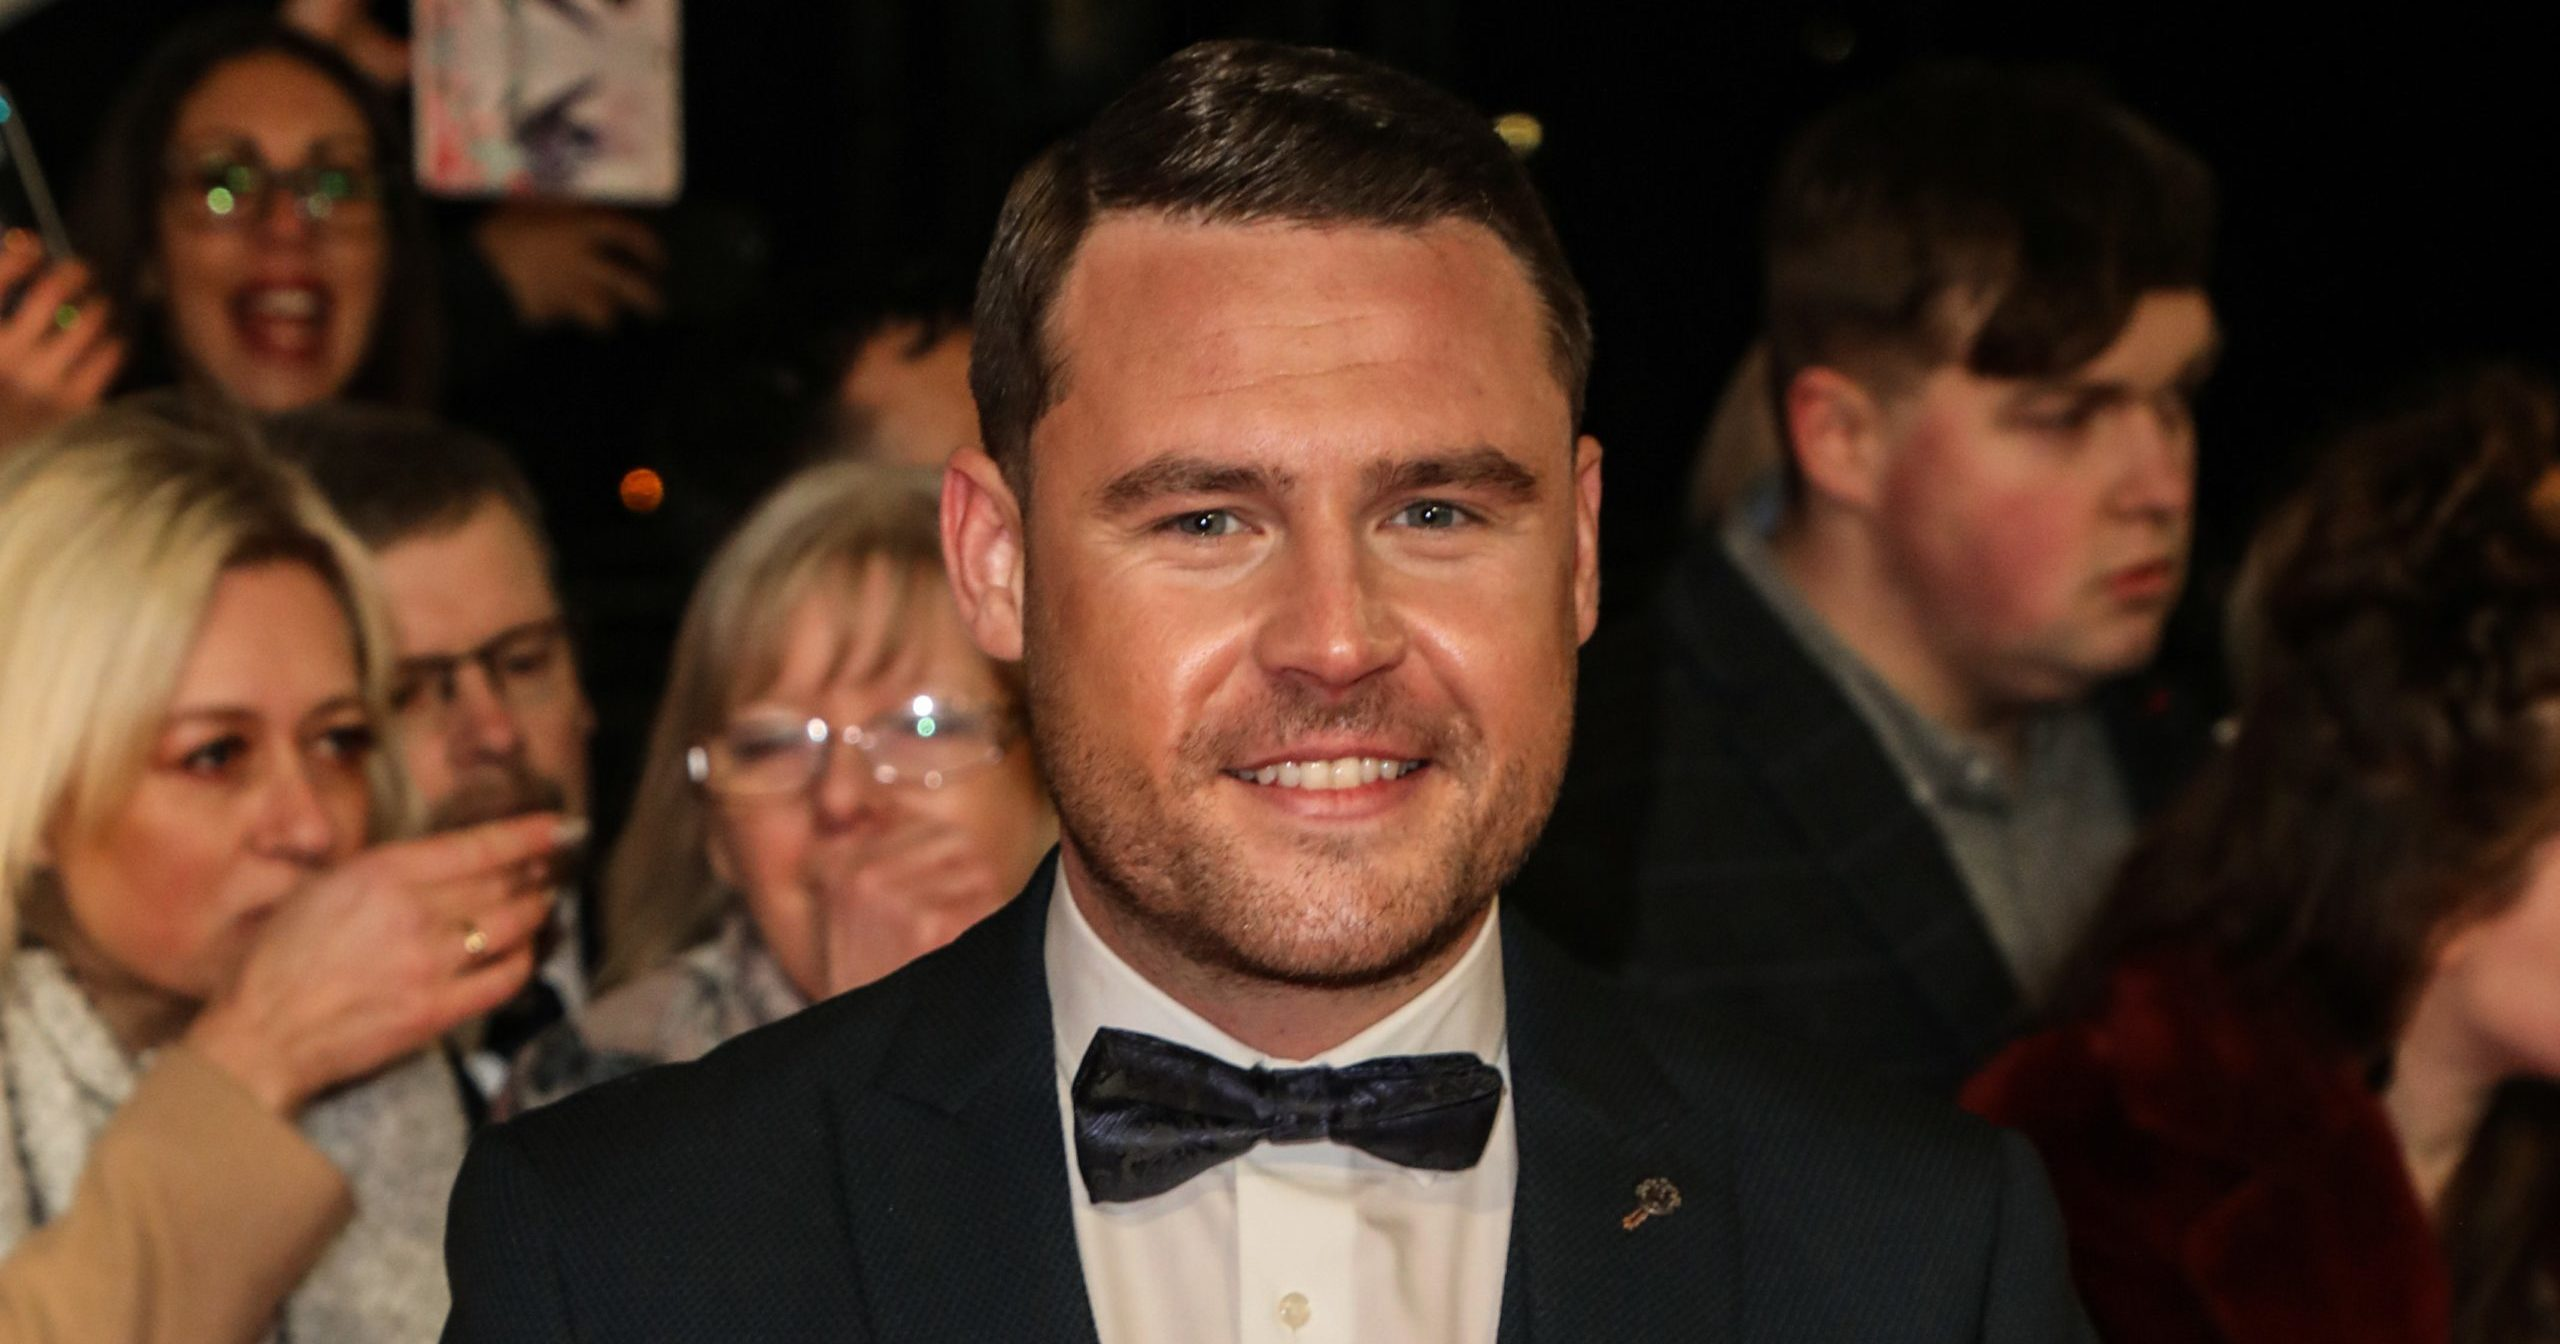 Emmerdale star Danny Miller reveals fears over returning to work